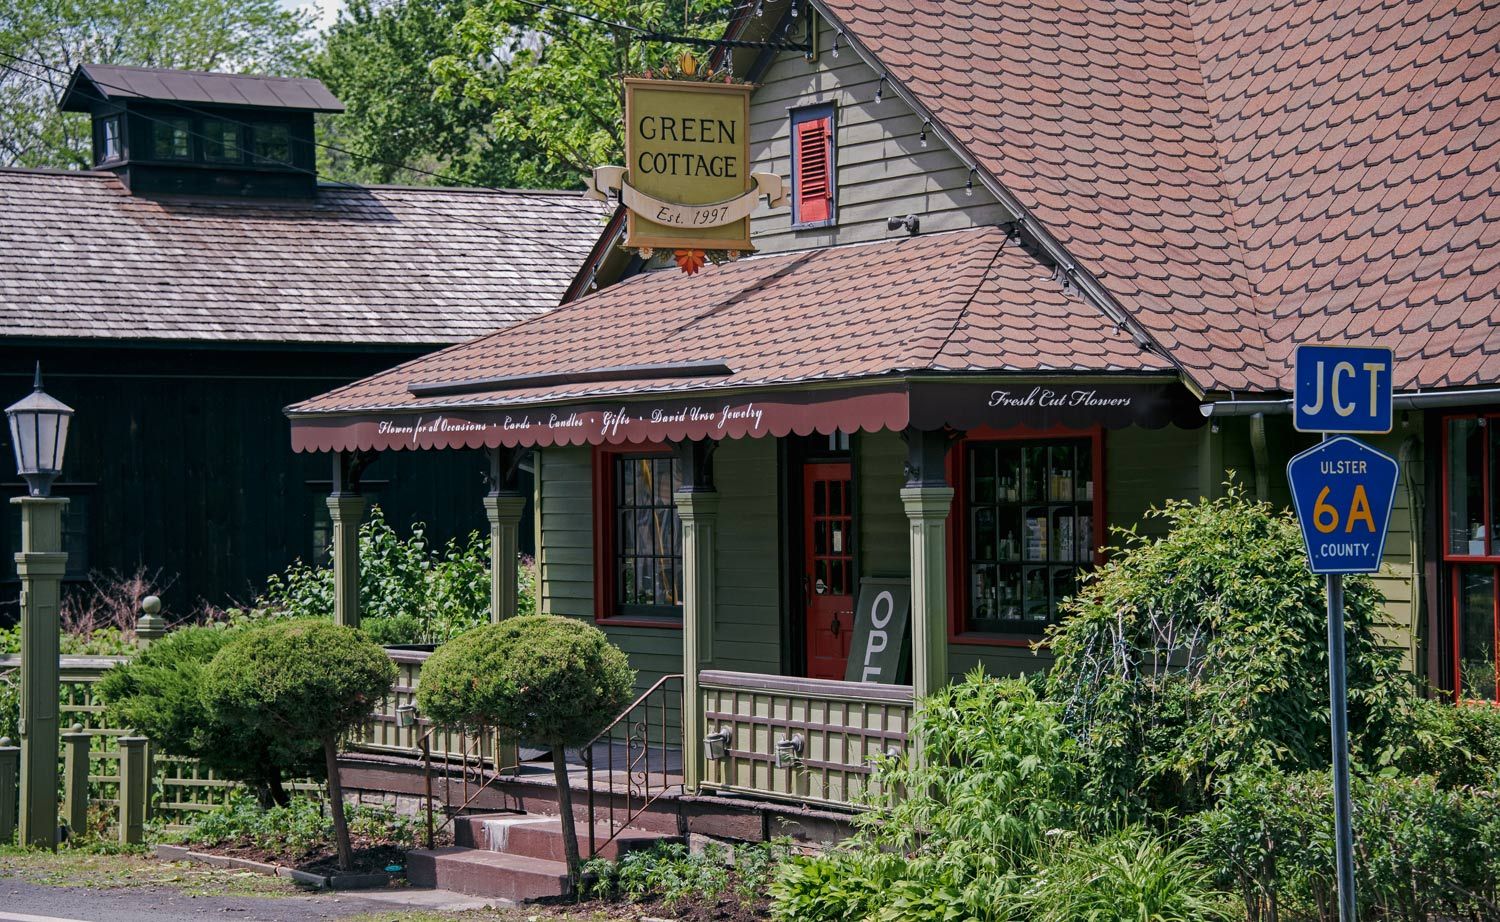 Green cottage store in High falls